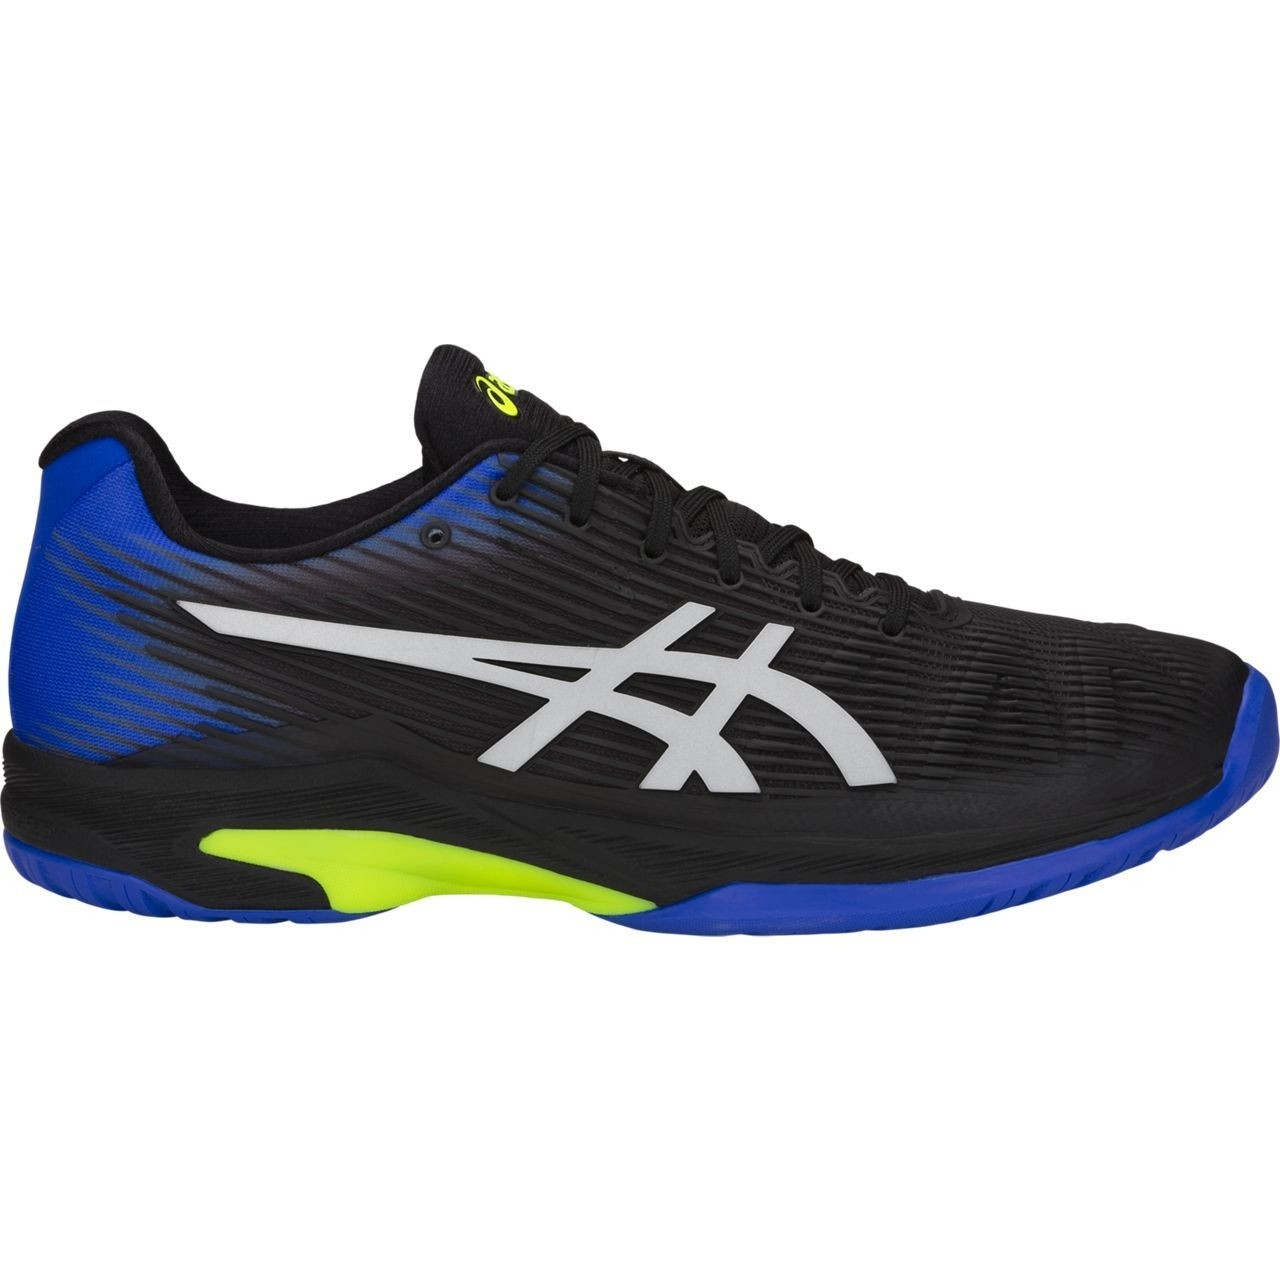 29c2d8803 Tênis Asics Gel Solution Speed FF Preto e Azul - SALLES TENIS & SQUASH